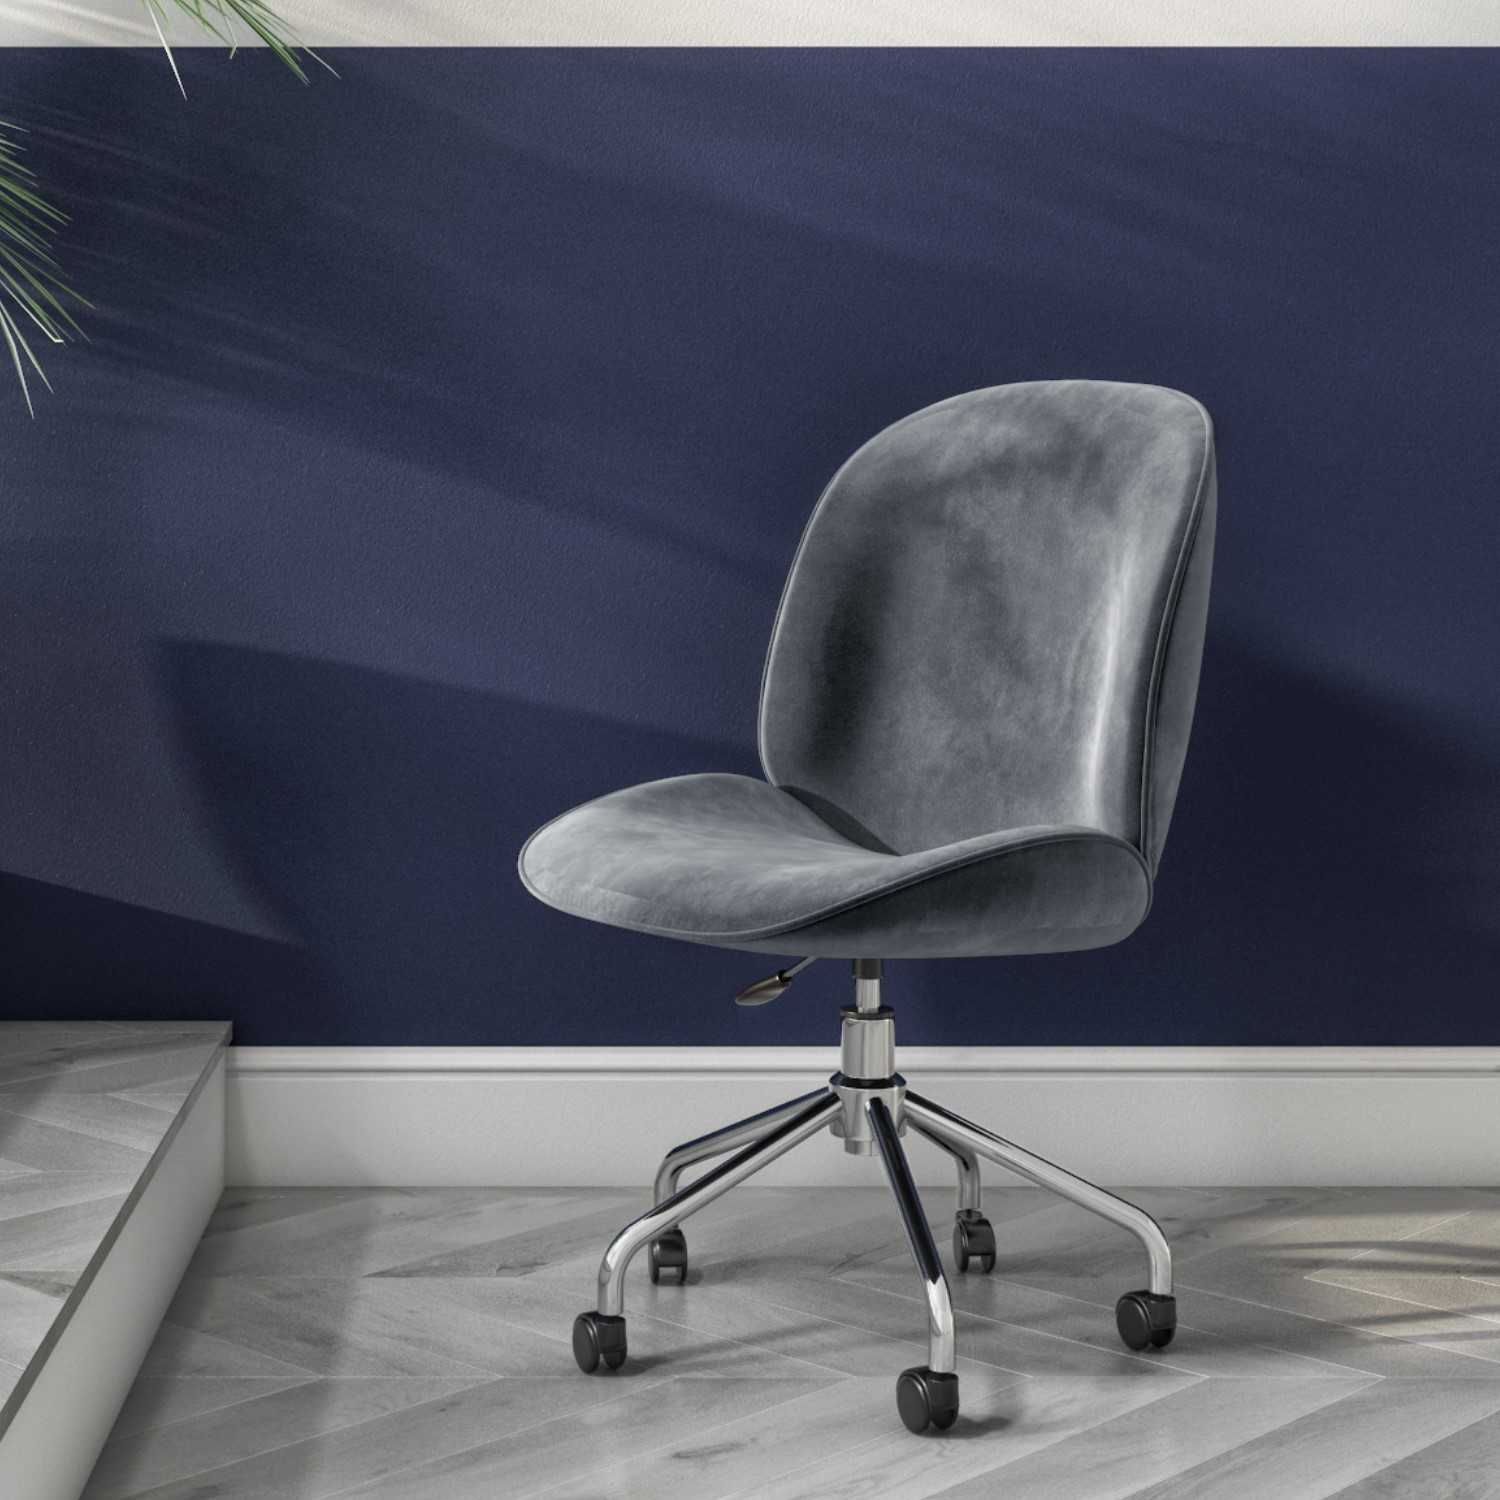 Grey Velvet Office Swivel Chair with Silver Base  Marley